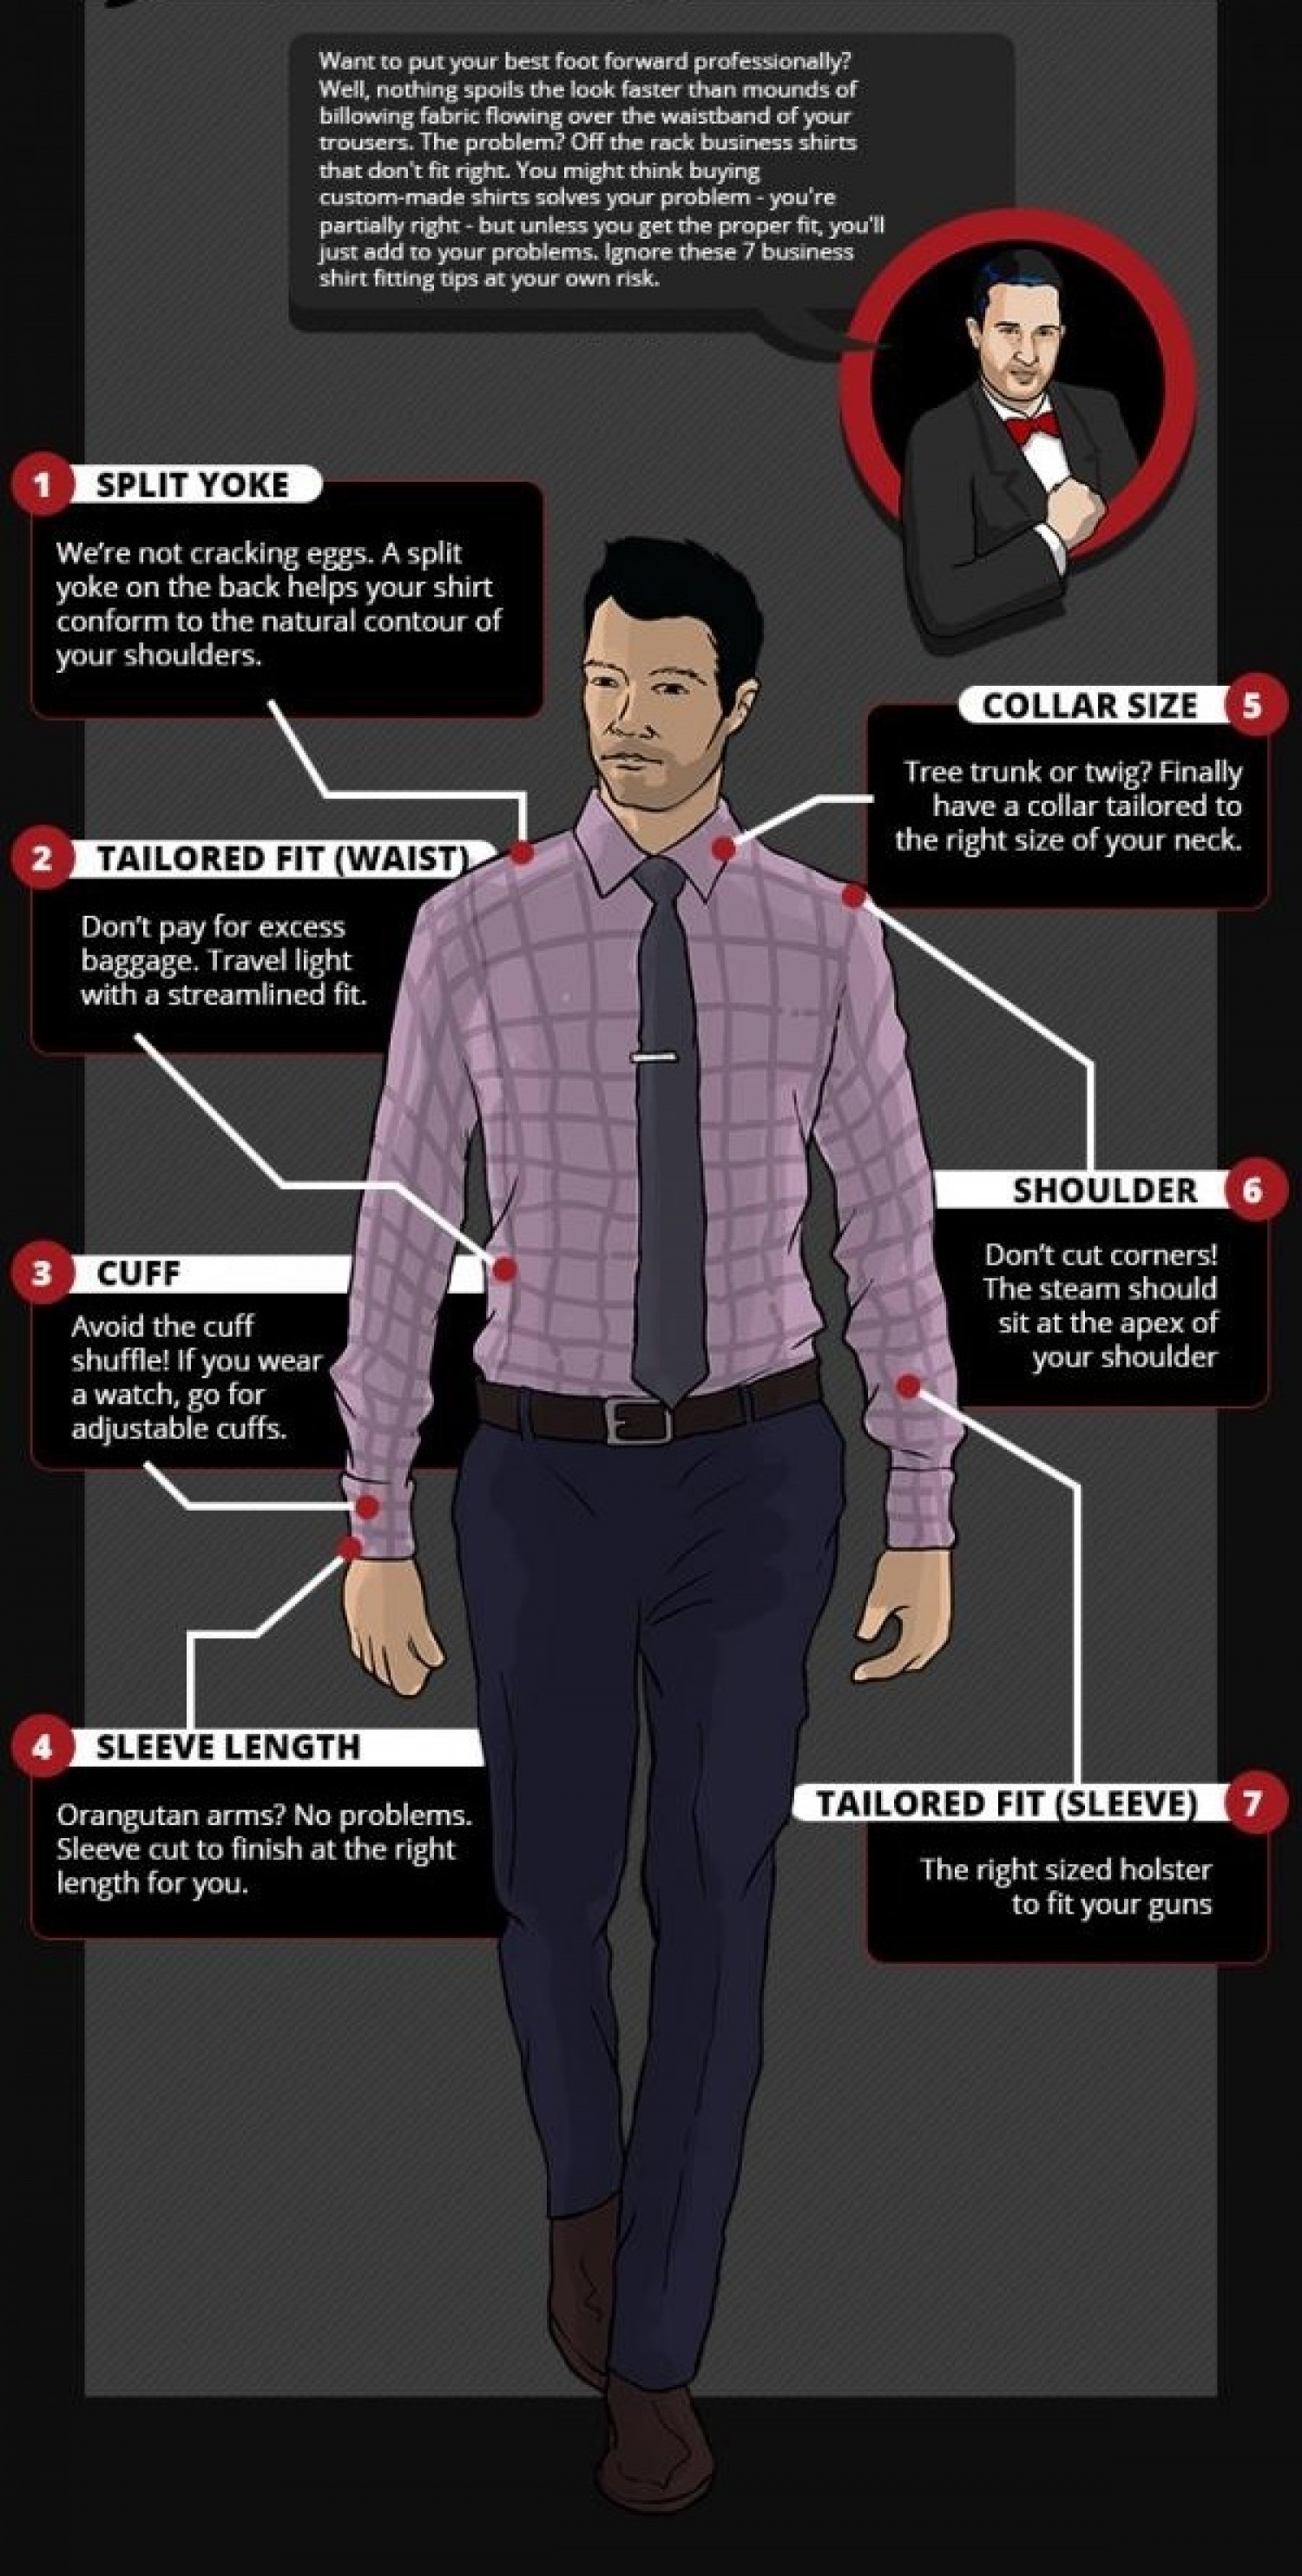 Improve The Way You Stitch Your Custom Tailored Shirts Infographic